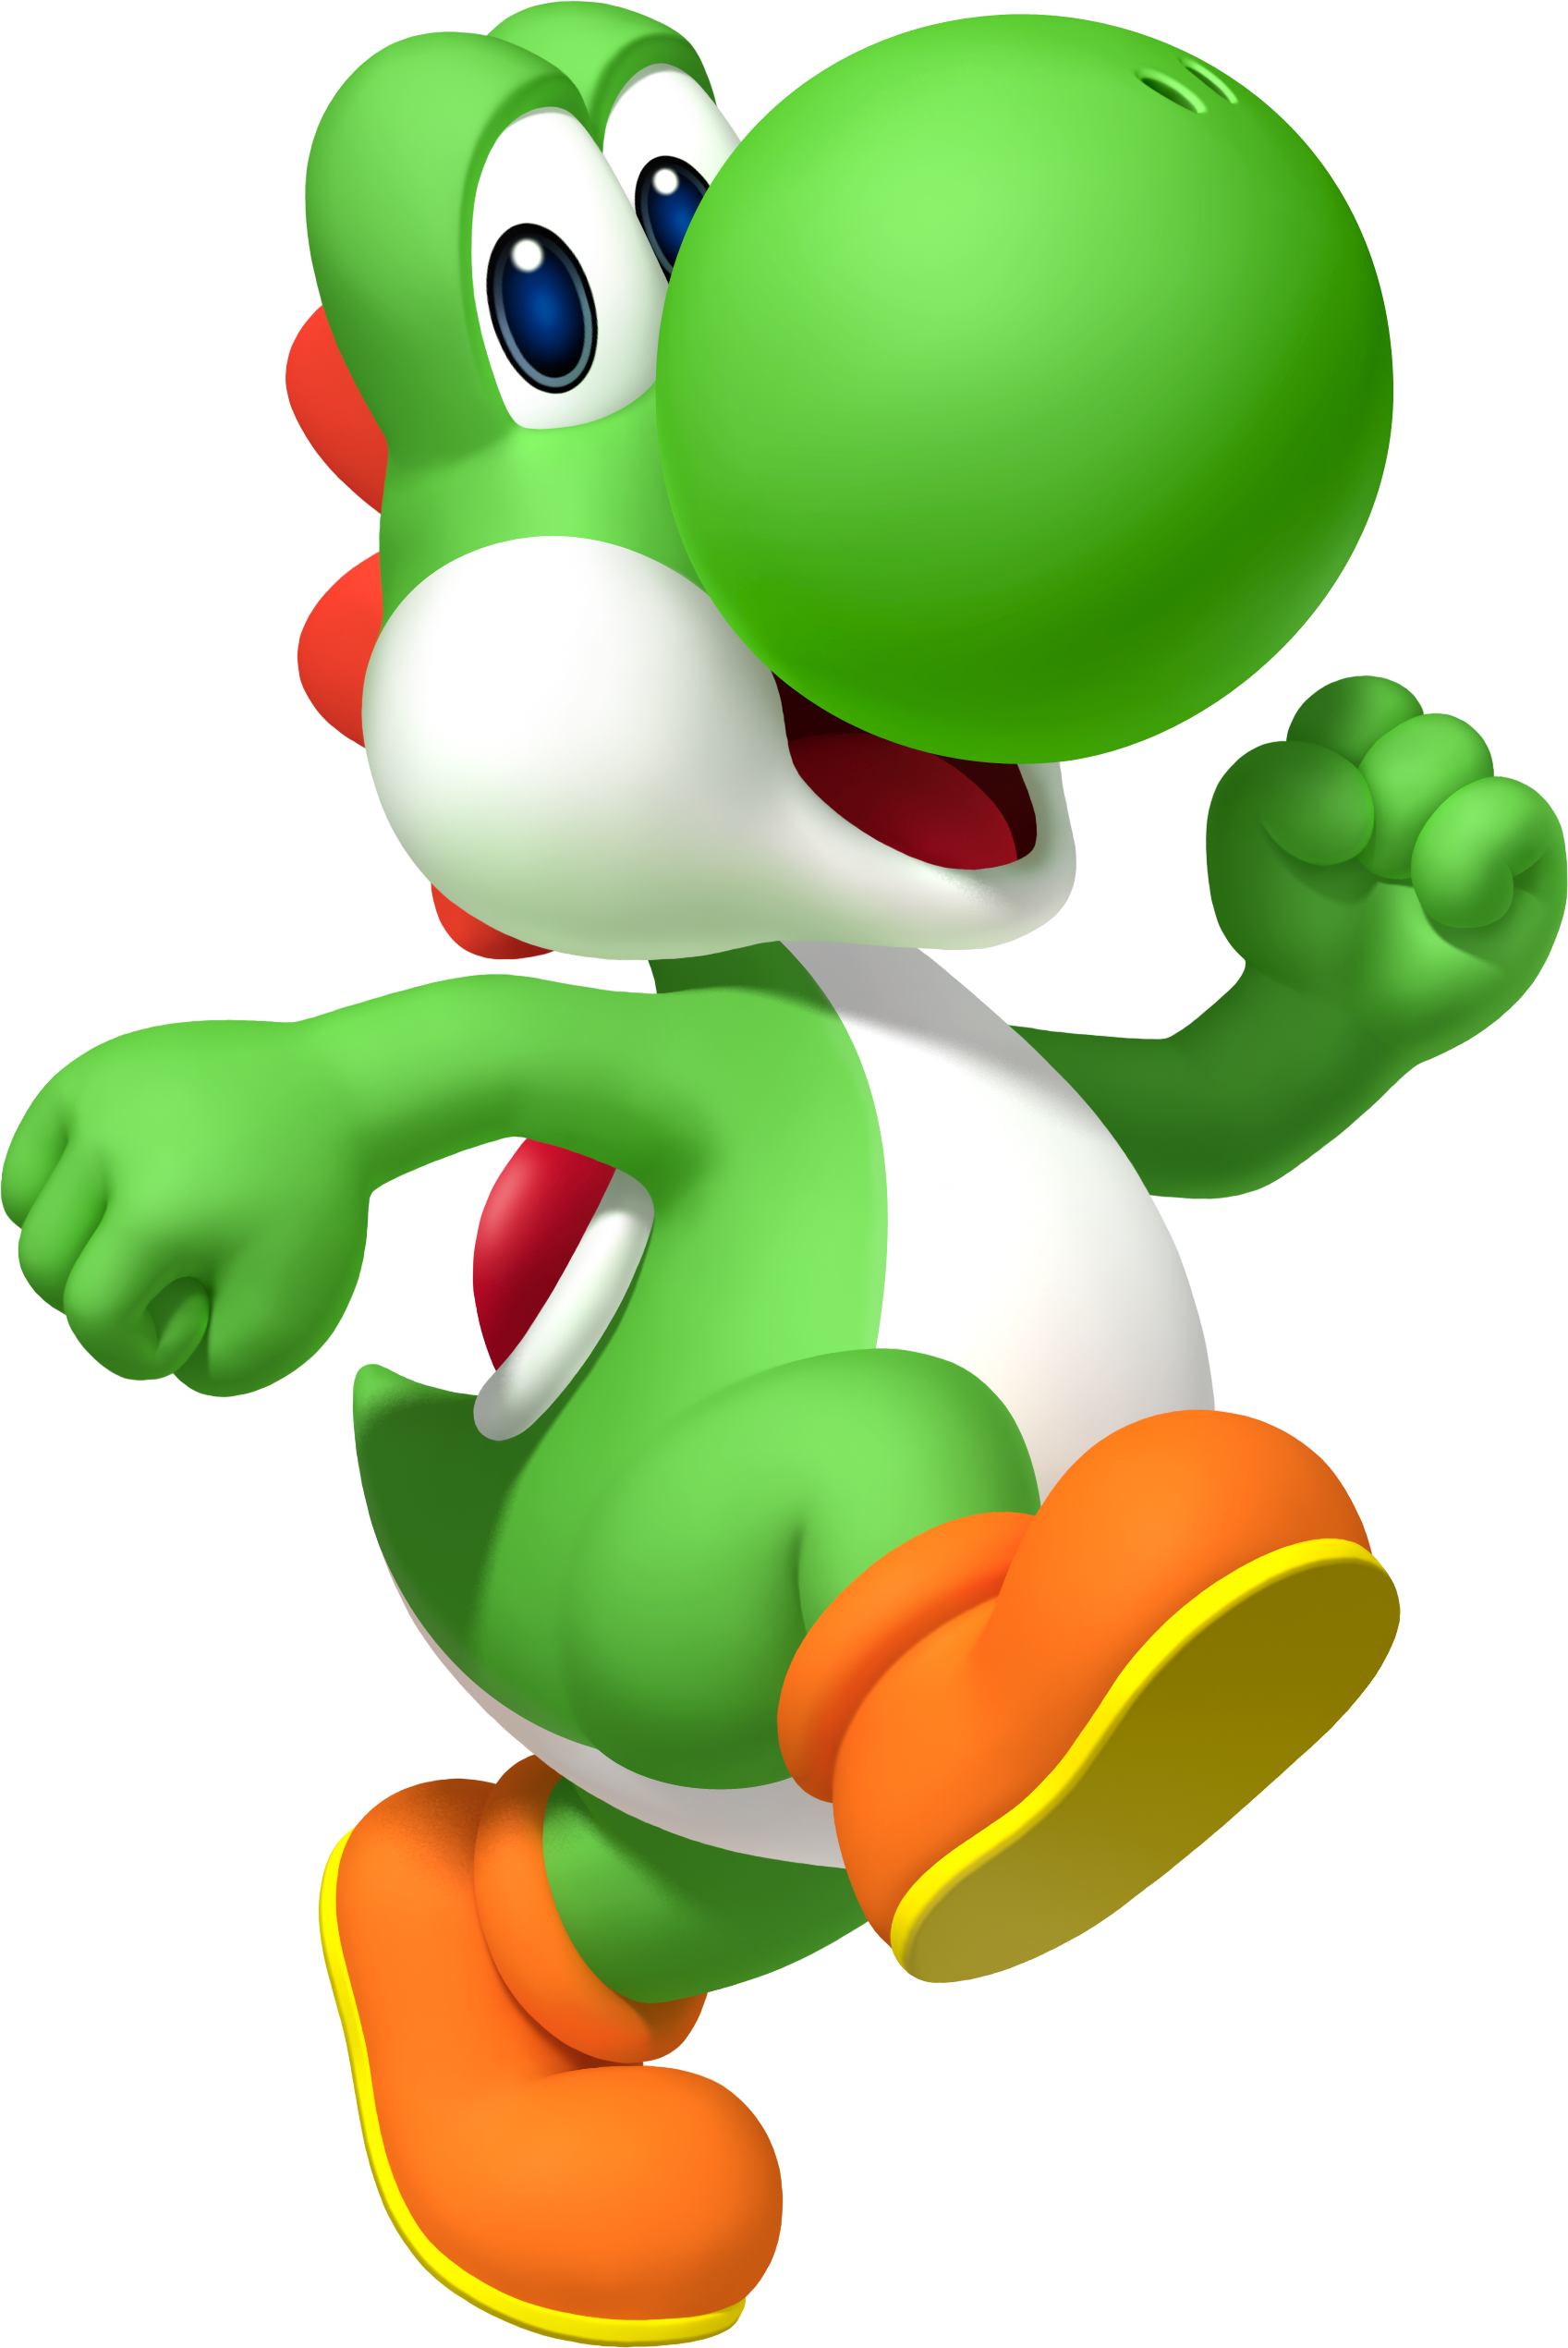 Mario Yoshi Png Pictures to pin on Pinterest